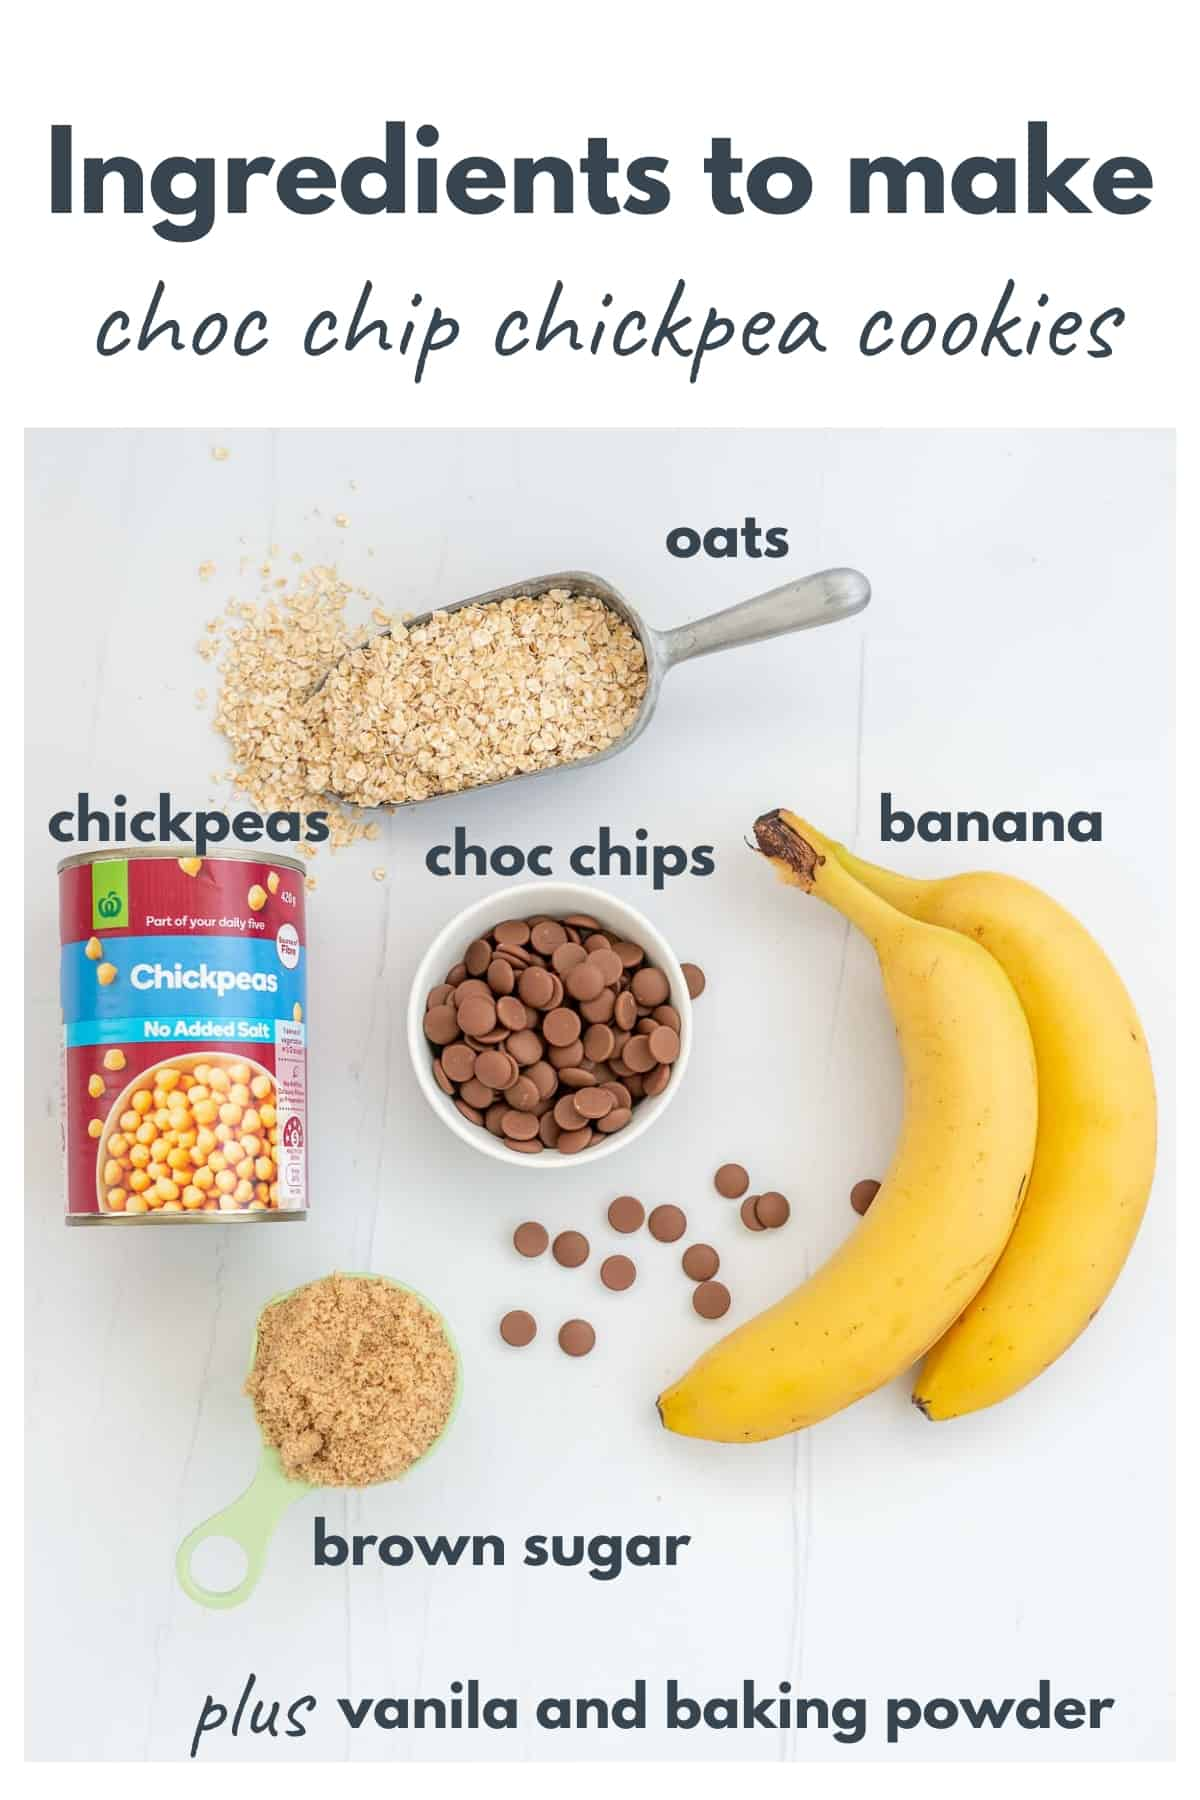 Topdown view of the ingredients needed to make chickpea cookies with text overlay